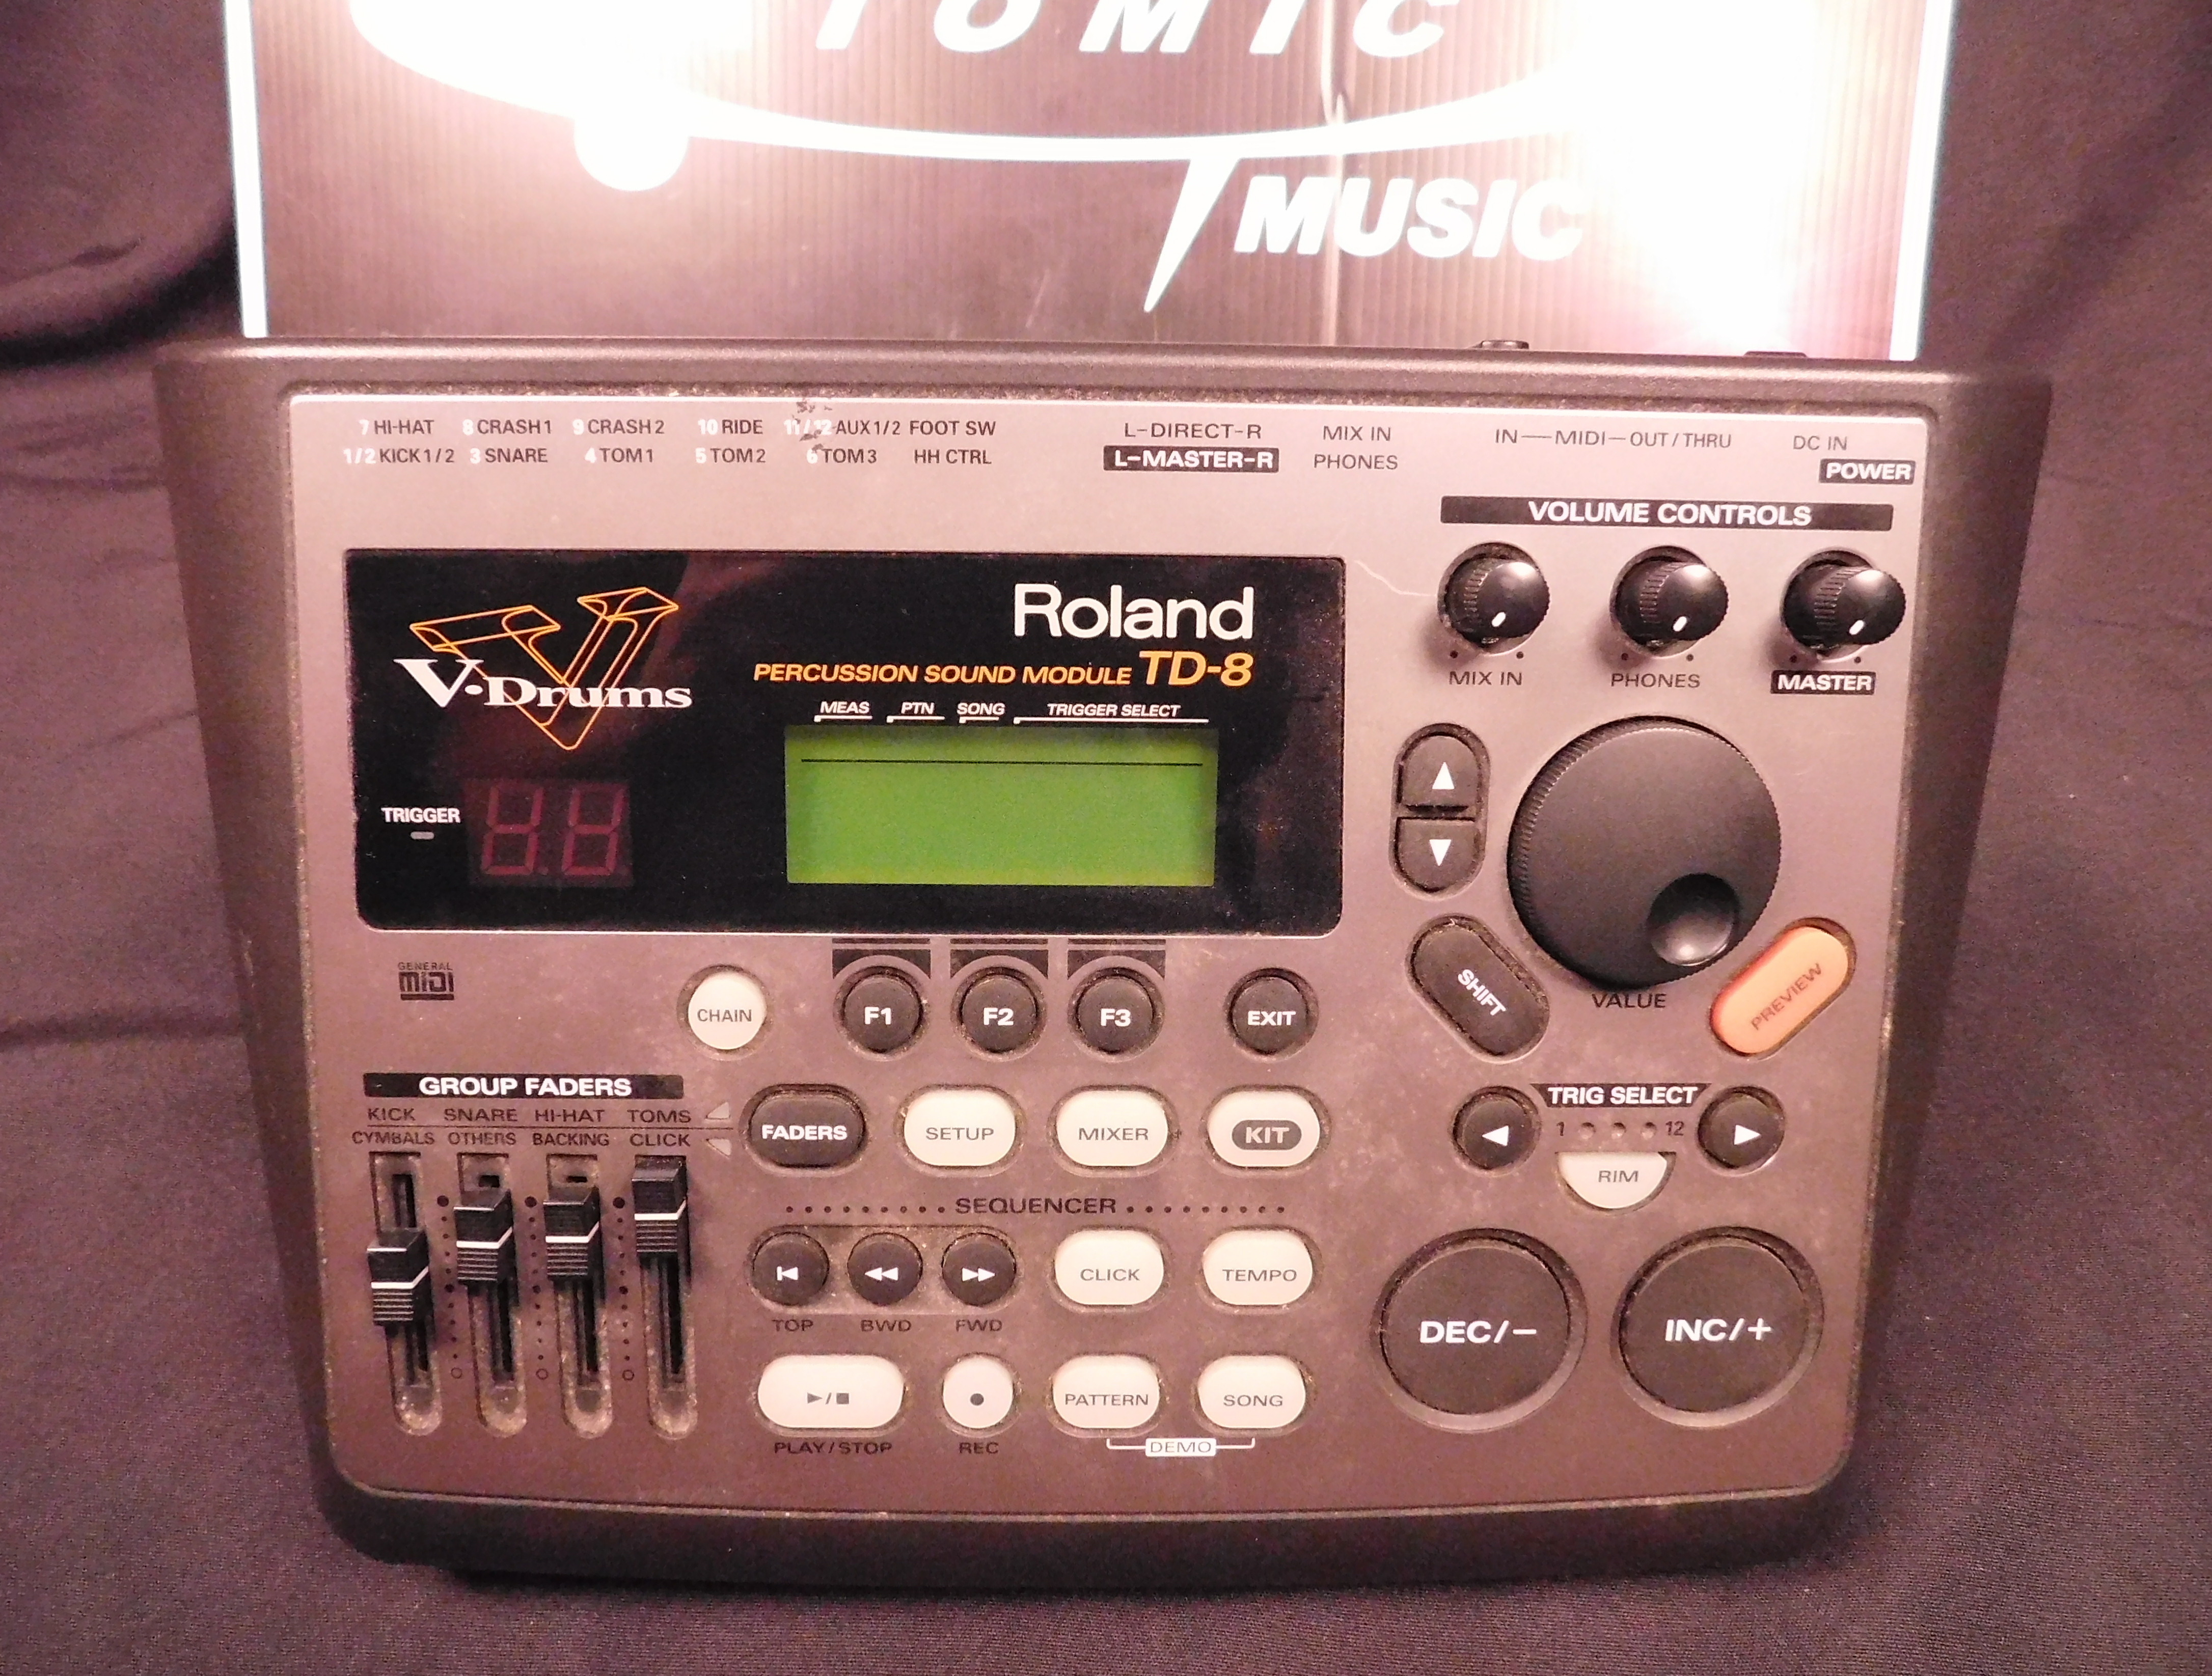 ROLAND TD-8 Percussion Sound Module Drum Brain with Power Supply!